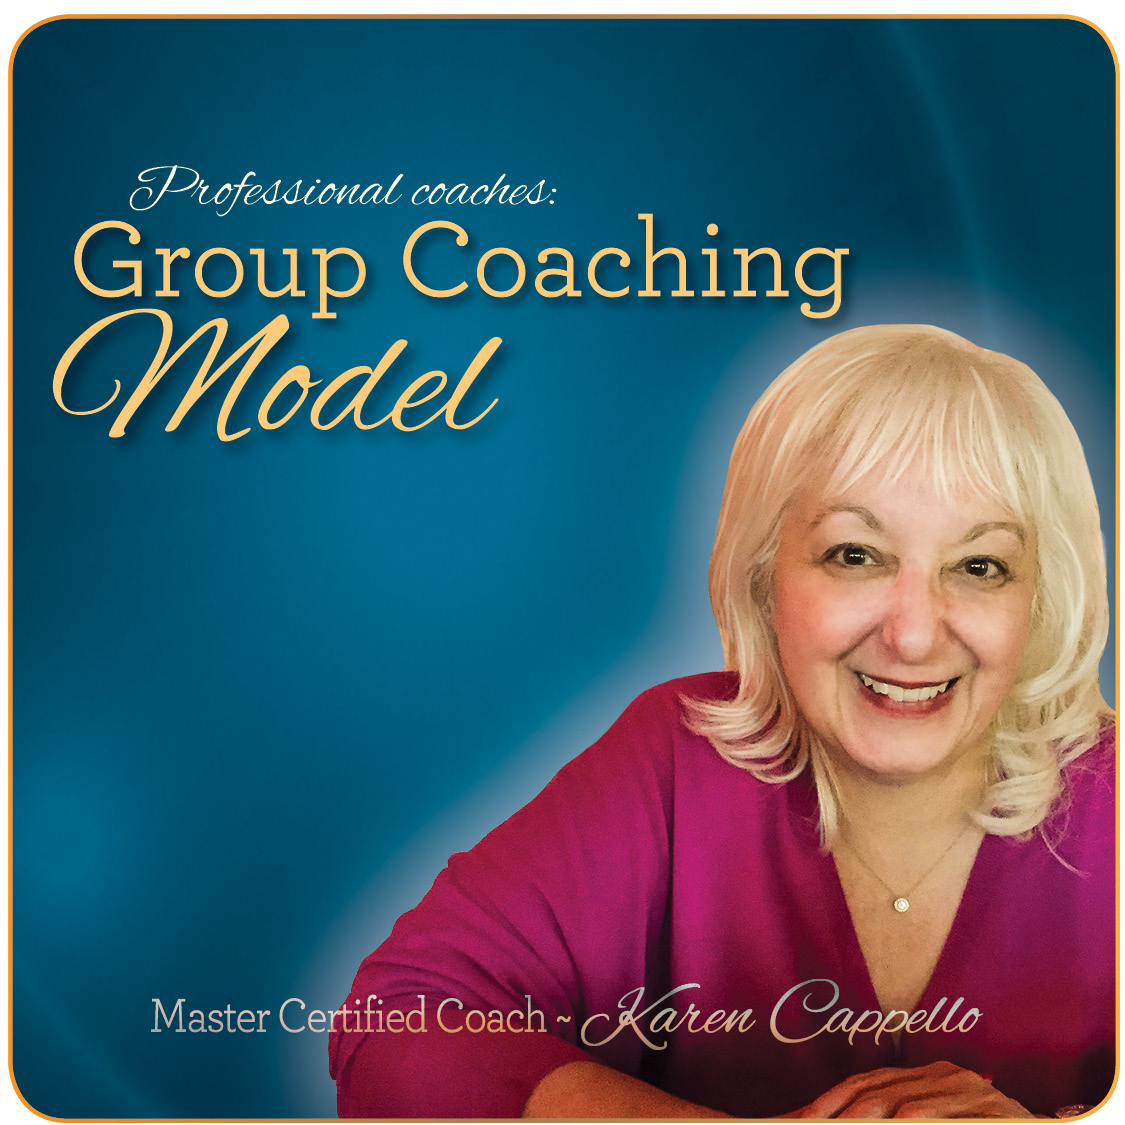 Group Coaching Model